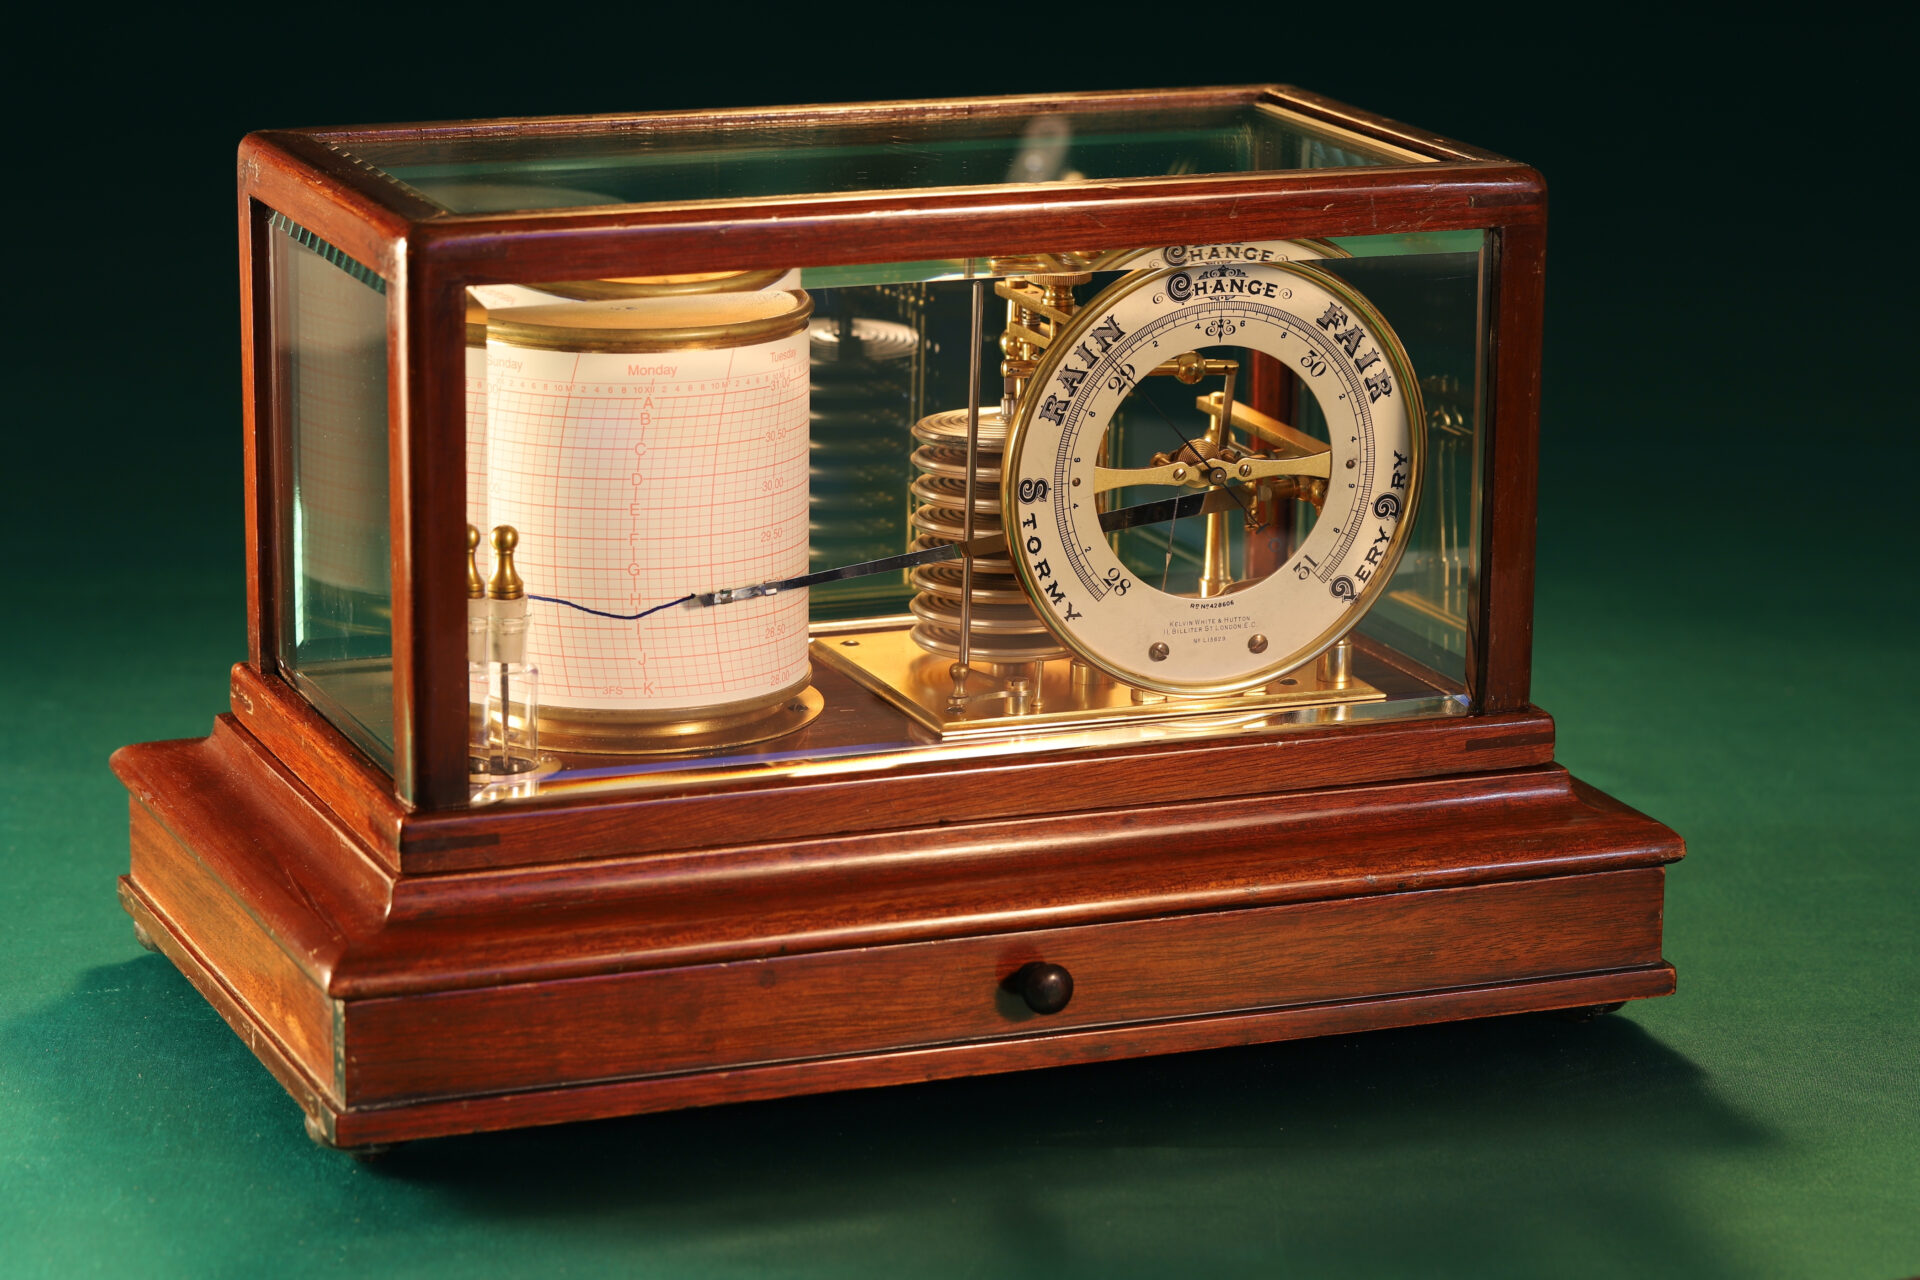 Image of Short & Mason Barograph No L13629 c1930 taken from lefthand side